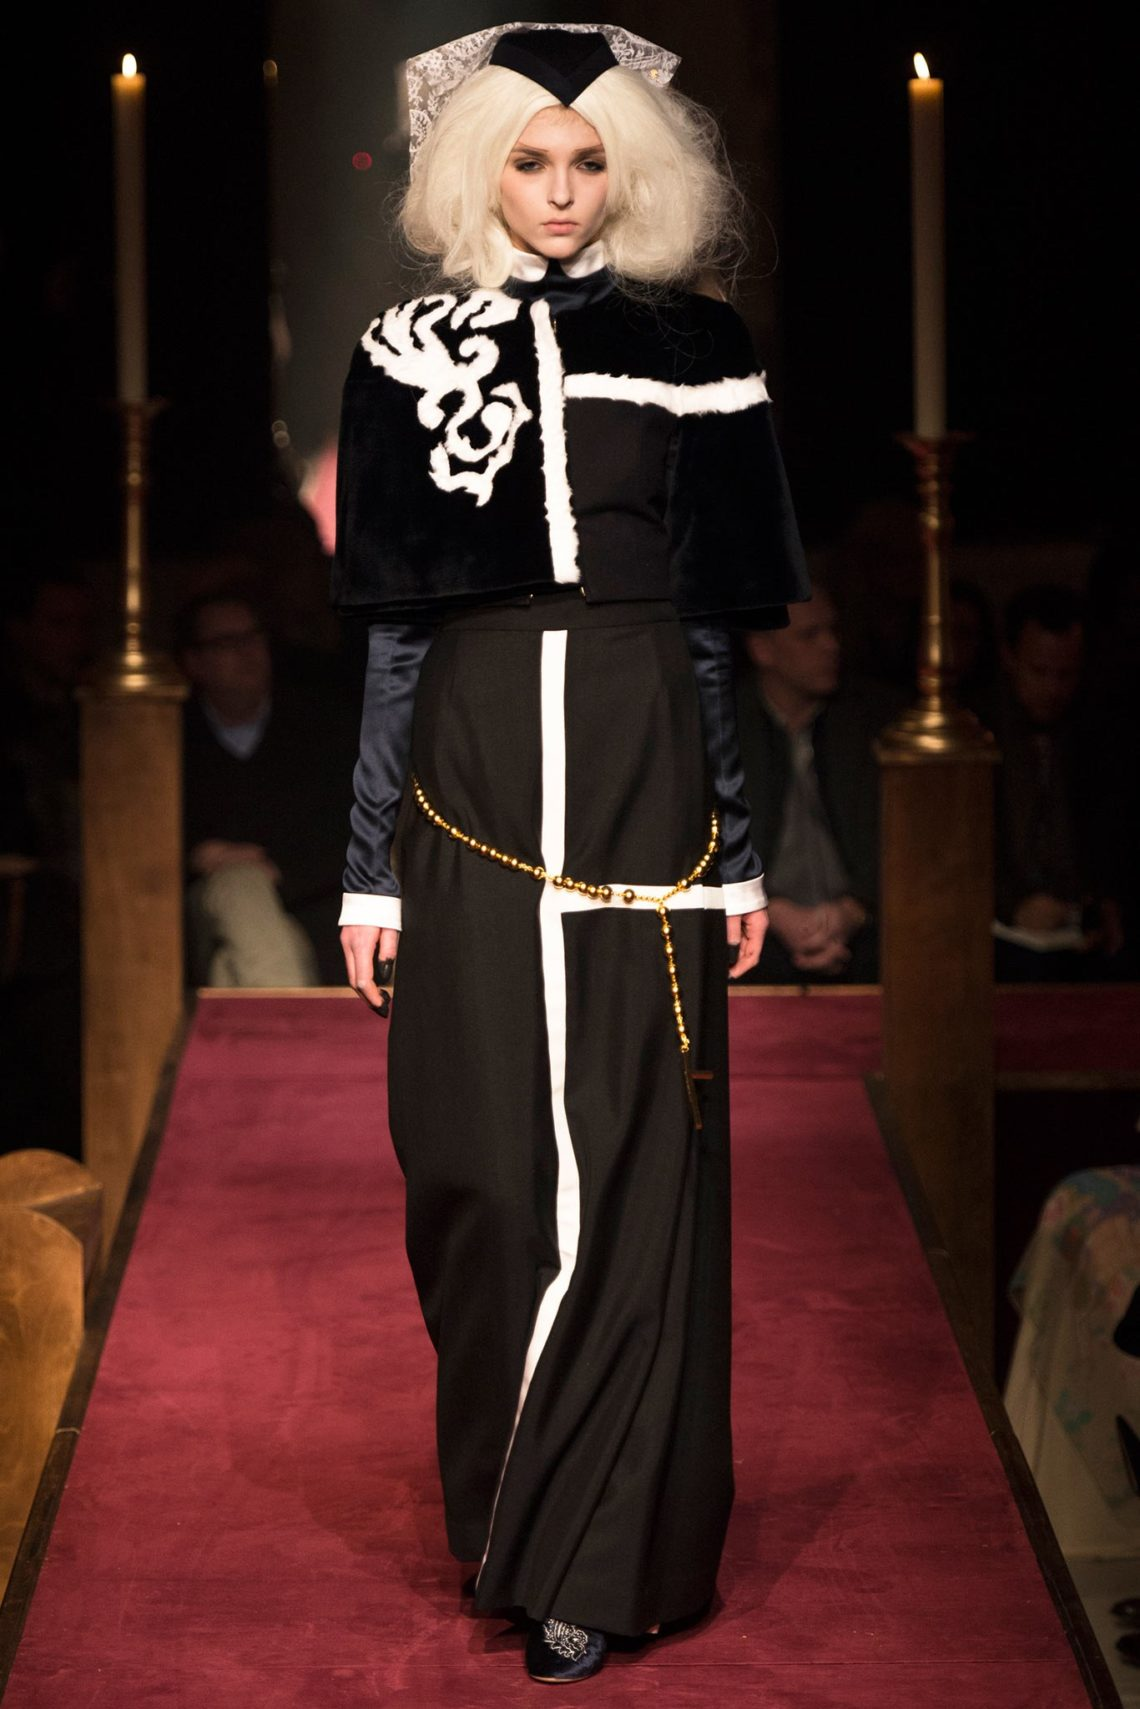 Unveiling-Intriguing-Conversation_Fashion-Religion-at-Met-Costume-Institute_Thom-Browne_nuns